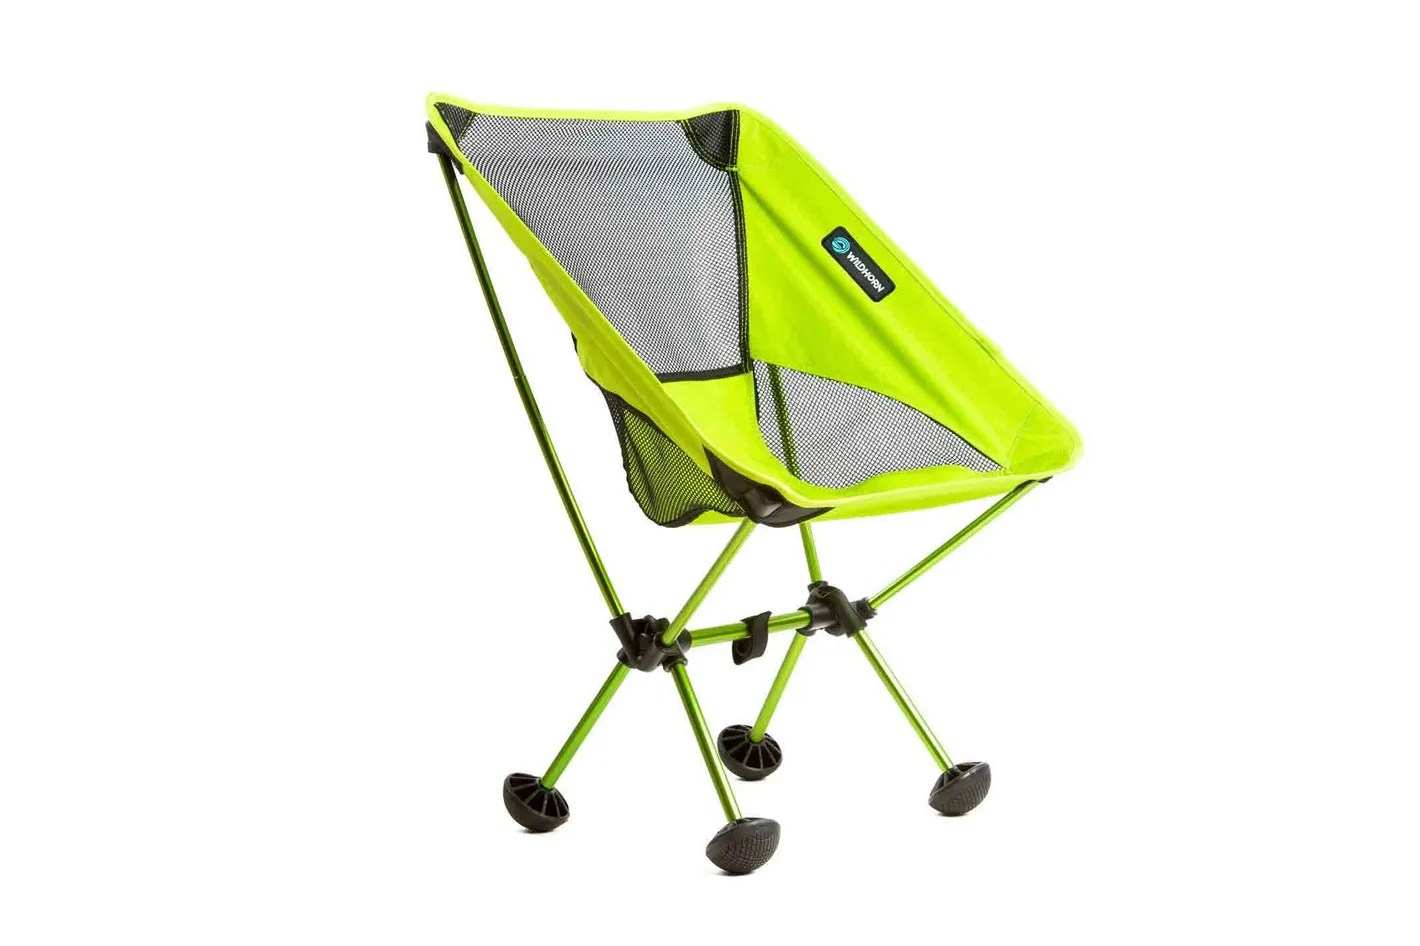 Small Fold Up Chair 11 Best Lawnchairs And Camping Chairs 2018